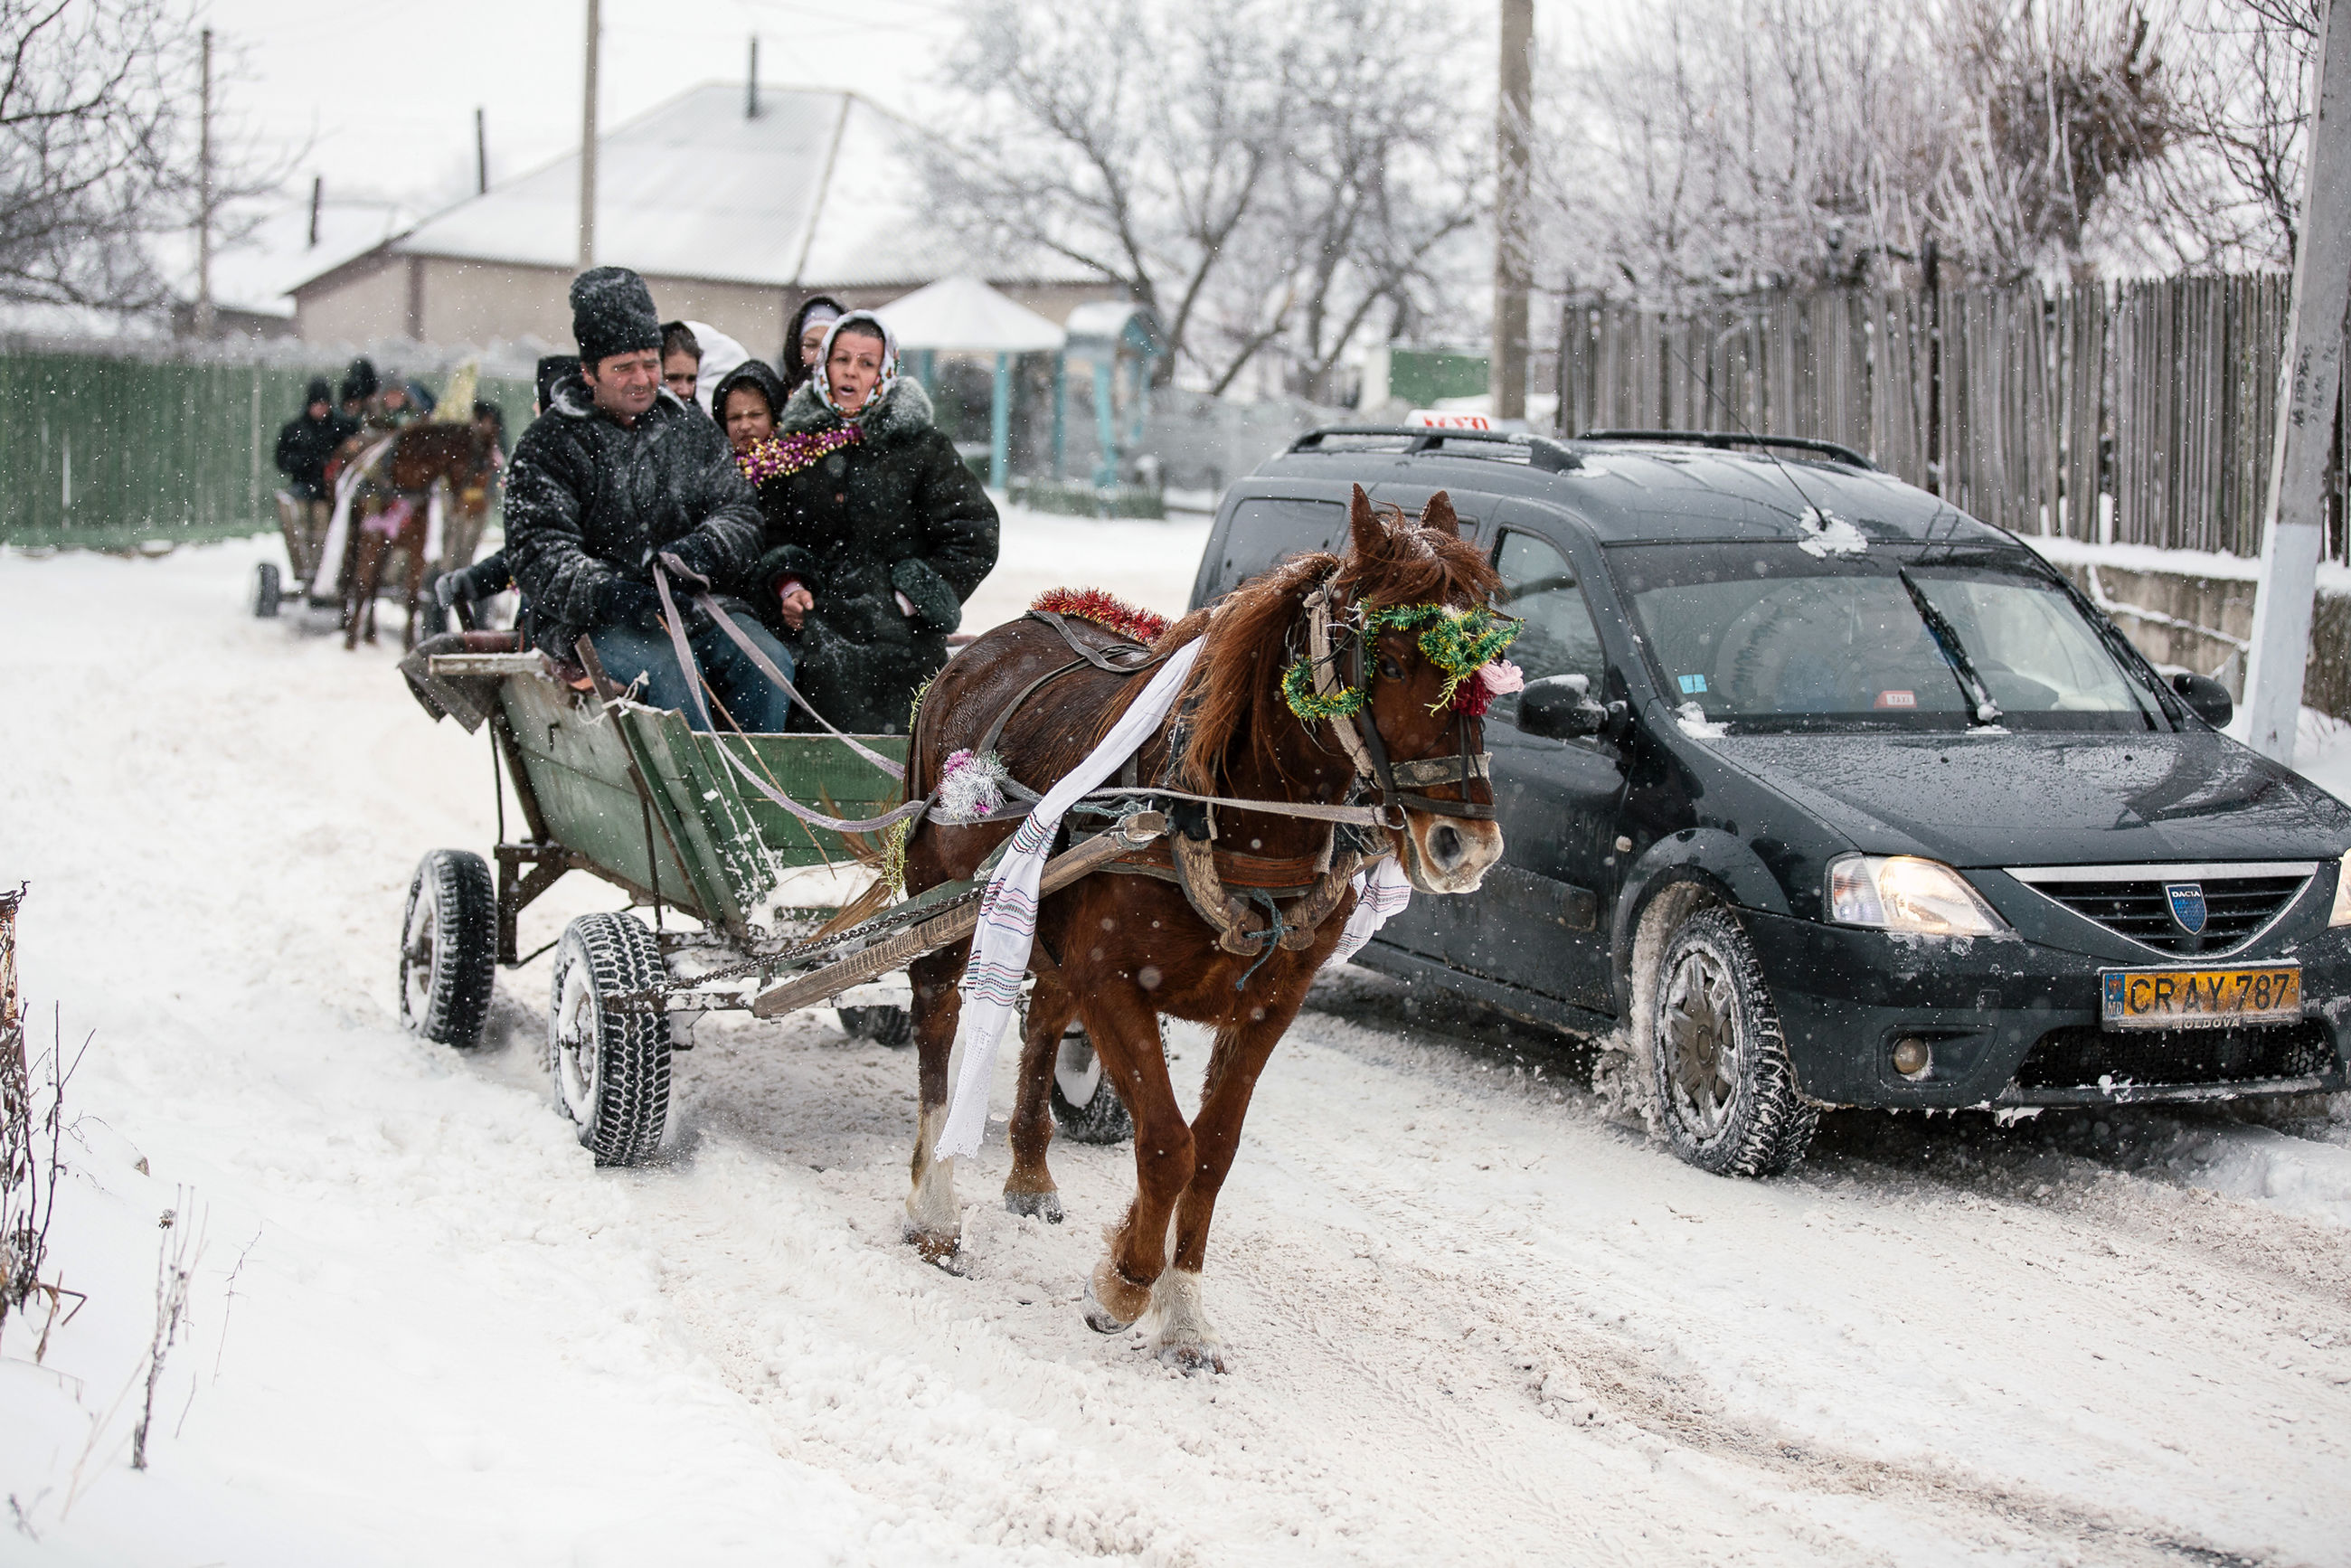 mode of transportation, winter, transportation, snow, mammal, domestic animals, cold temperature, domestic, pets, car, motor vehicle, real people, one animal, men, land vehicle, day, warm clothing, outdoors